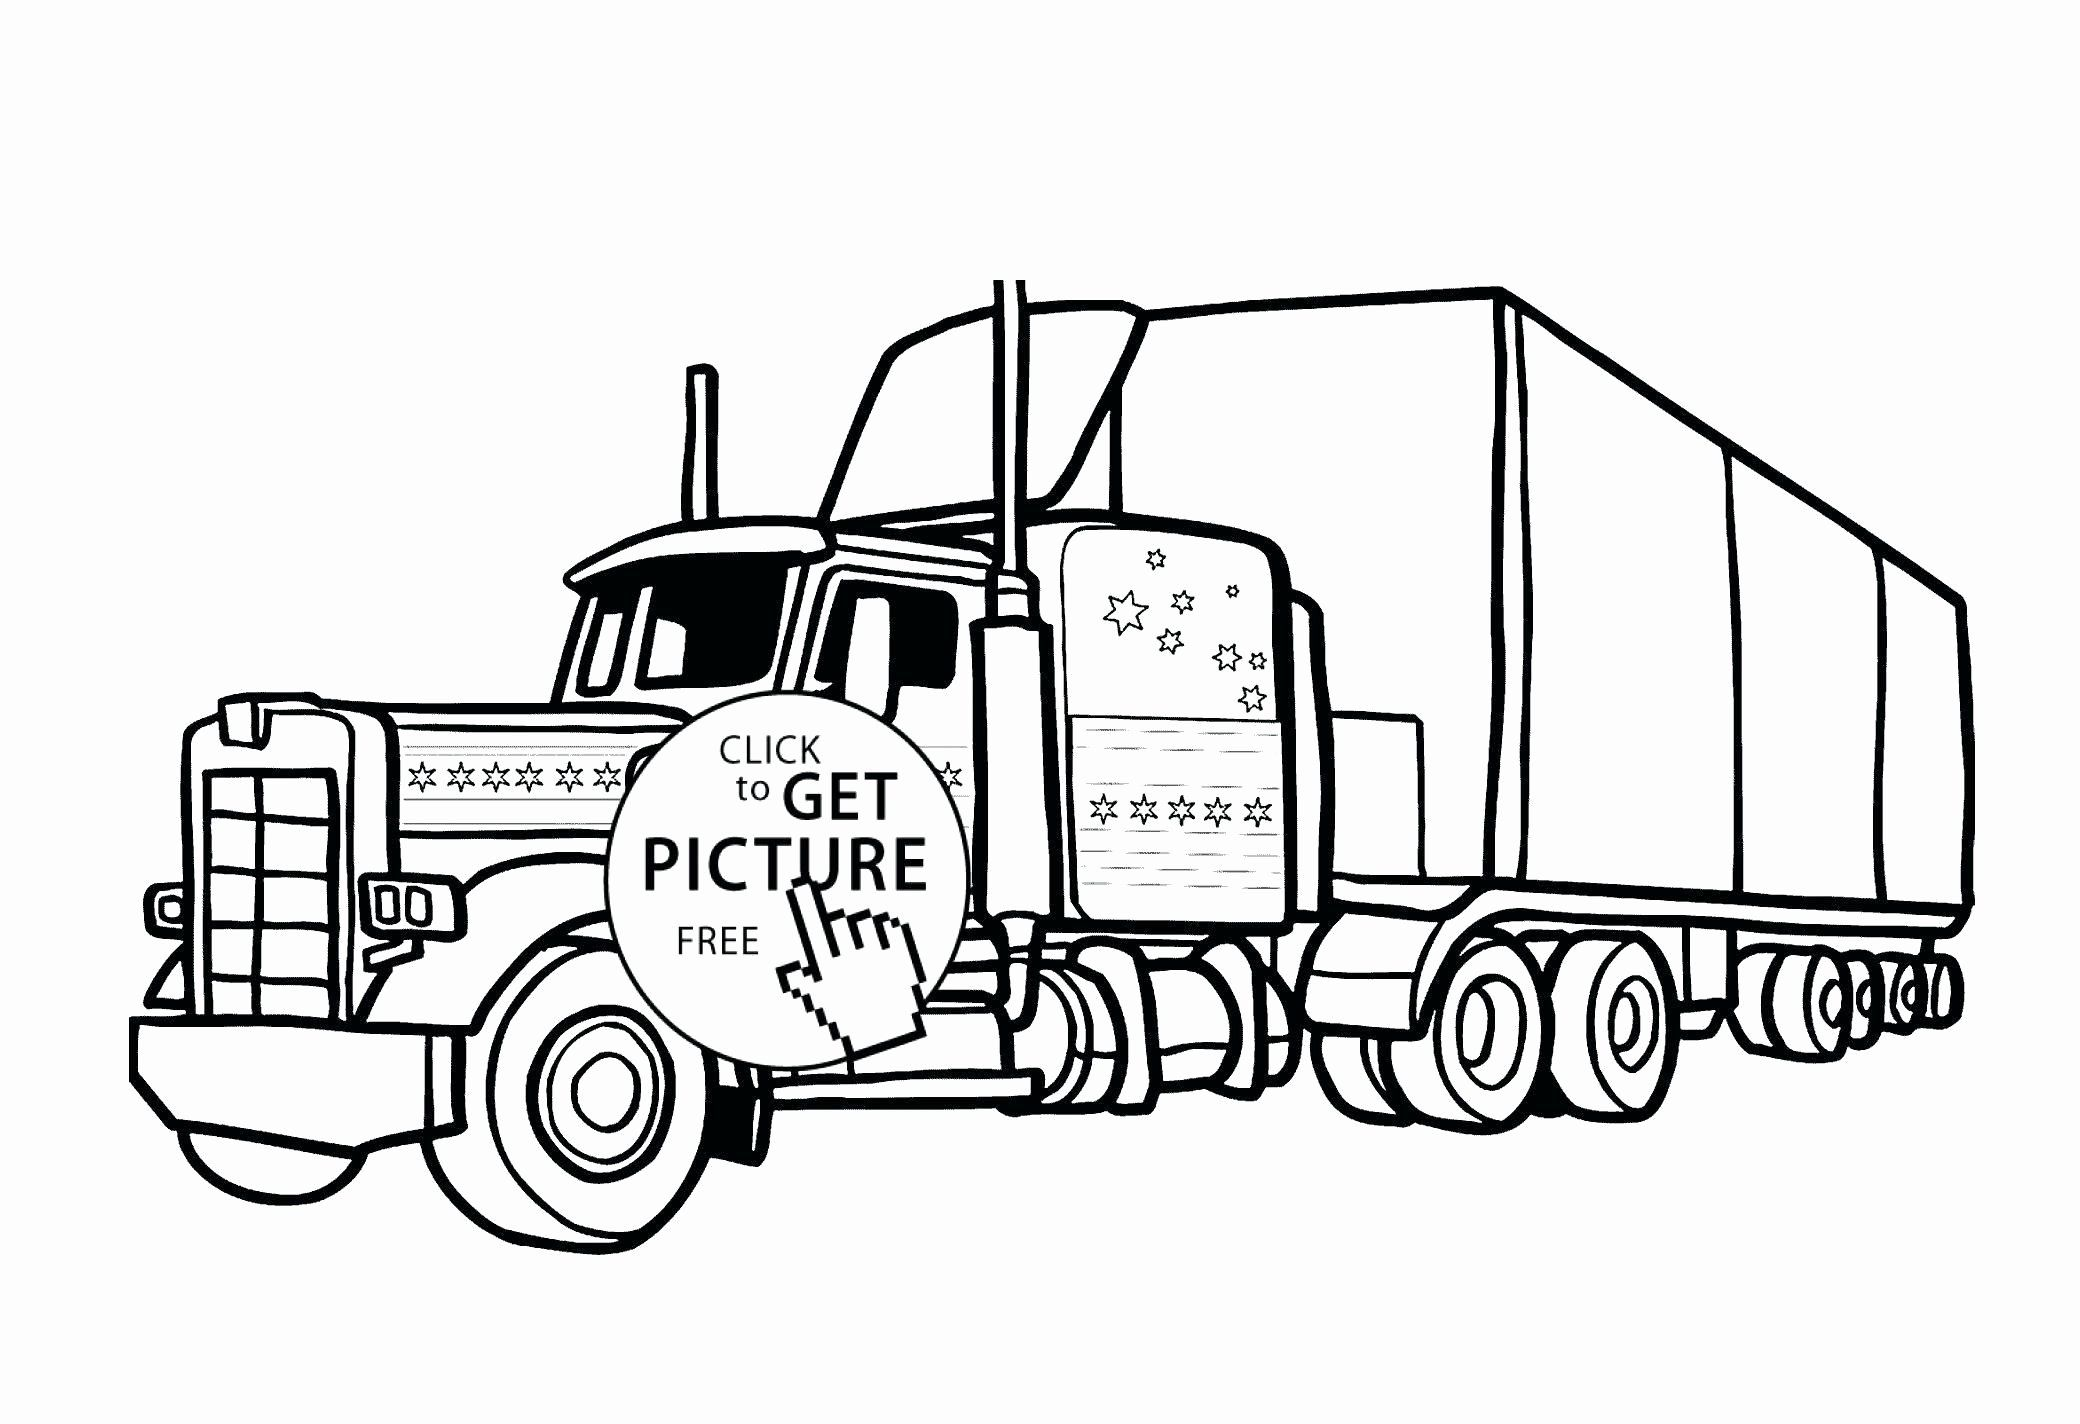 Coloring Transportation In 2020 Truck Coloring Pages Tractor